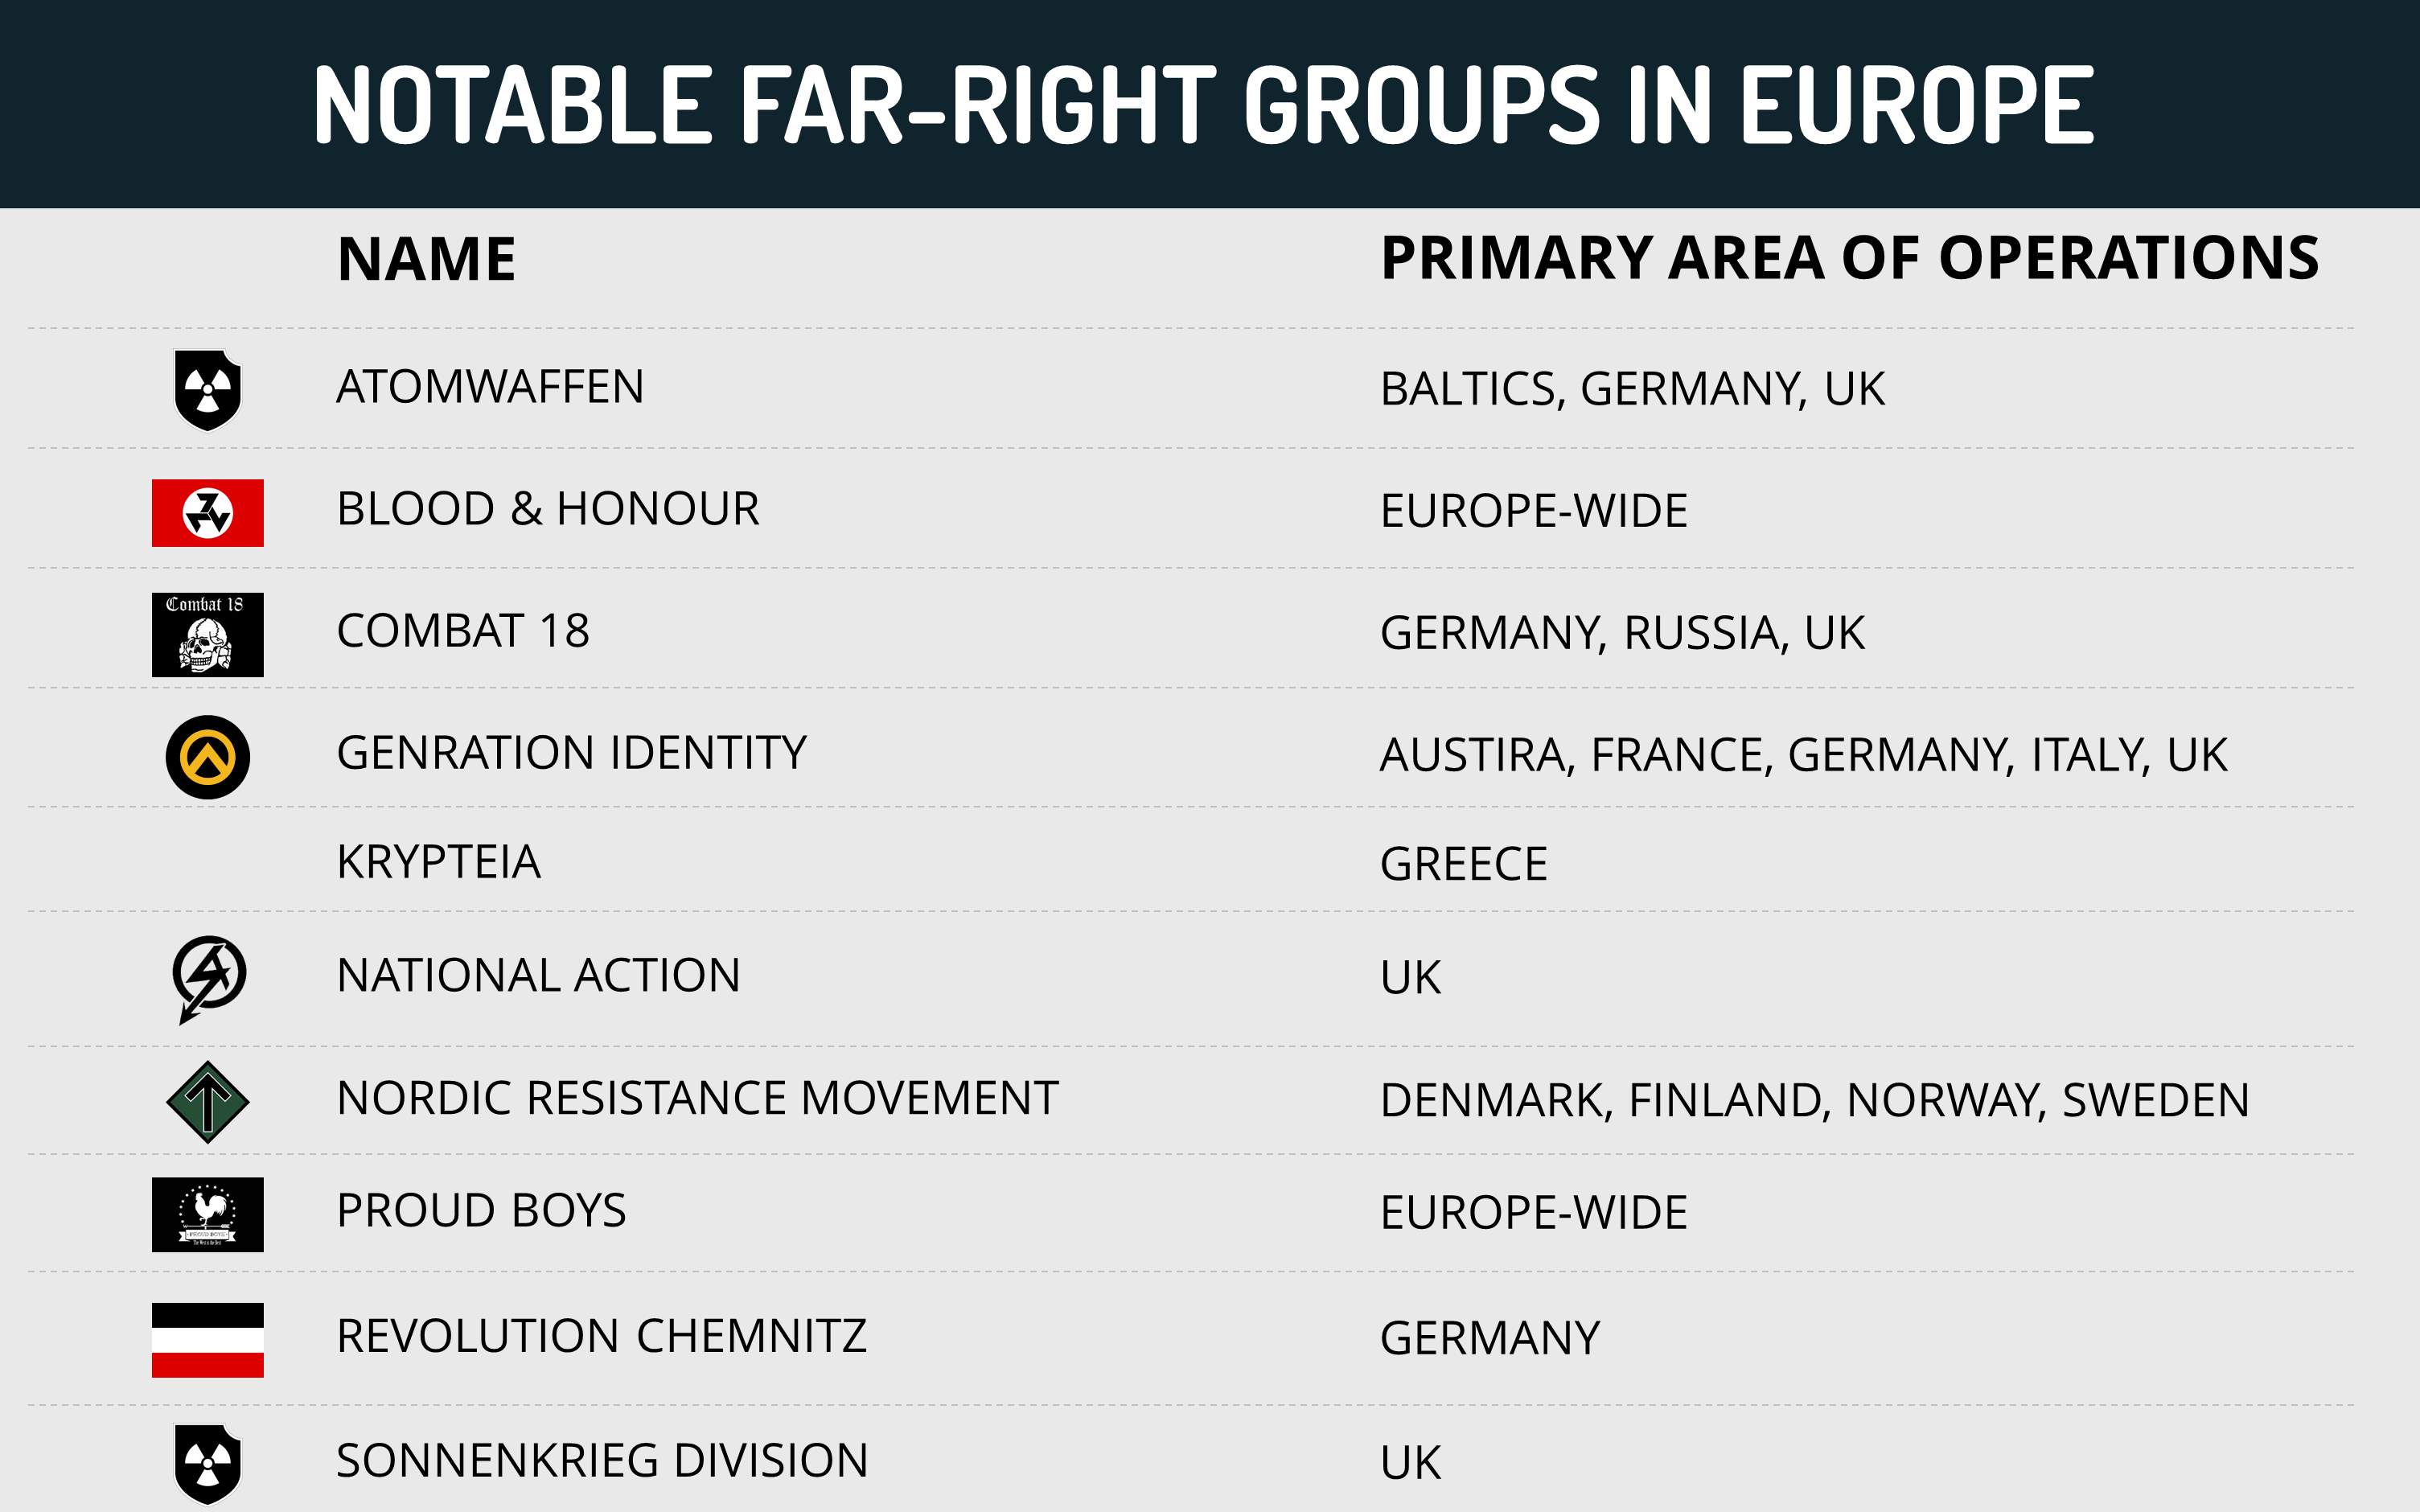 Notable far-right groups in Europe